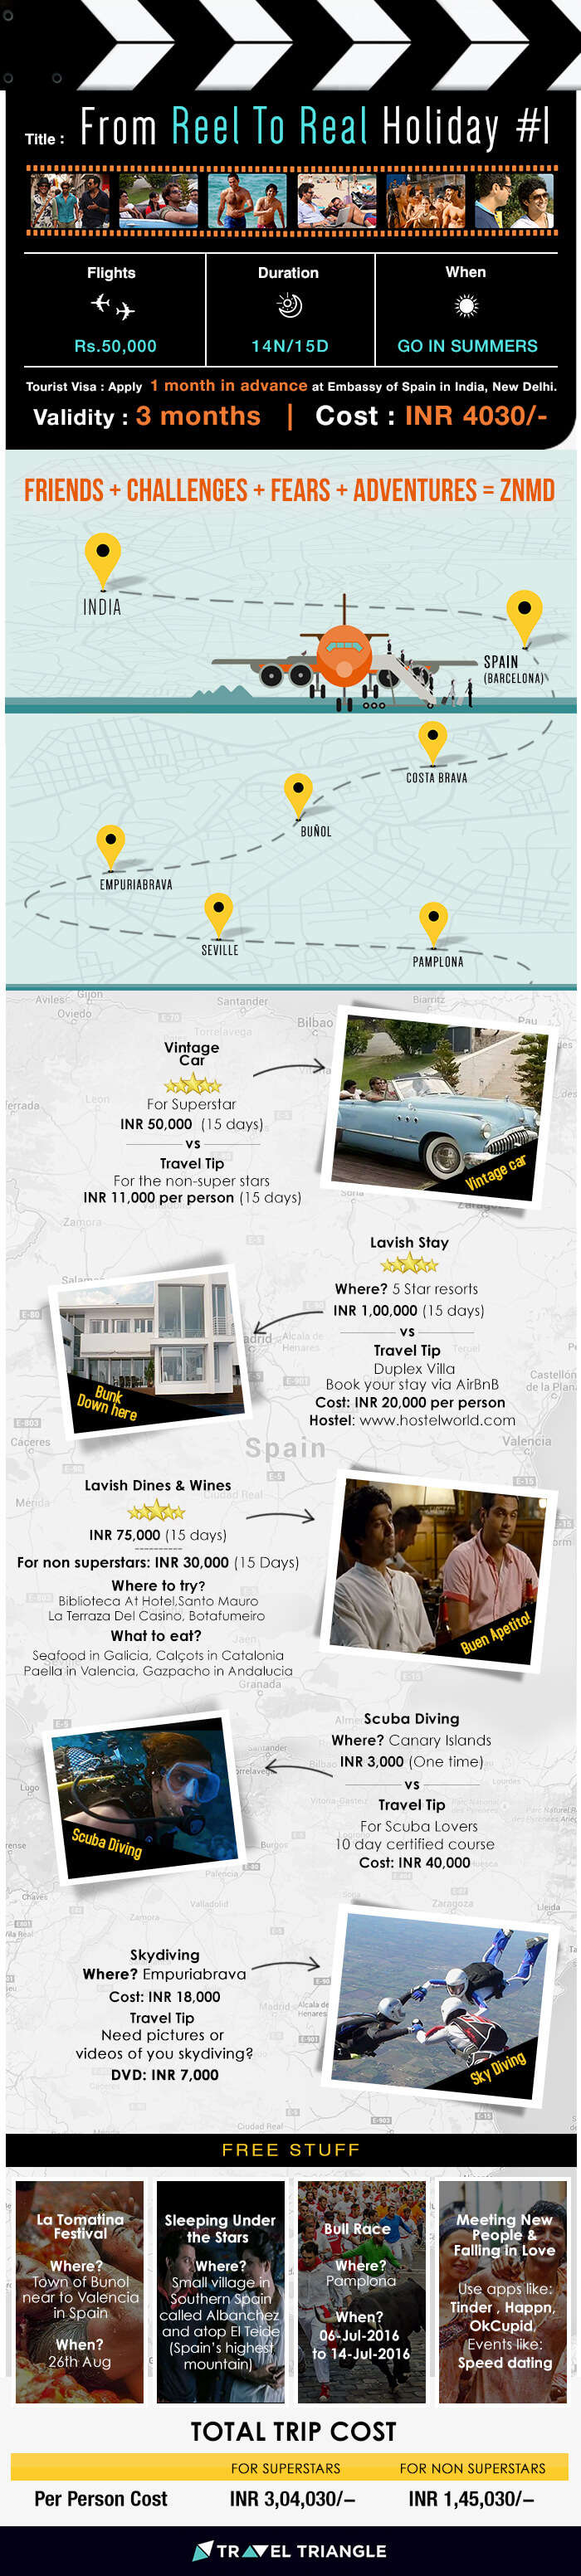 From Reel To Real Zindagi Na Milegi Dobara Infographic